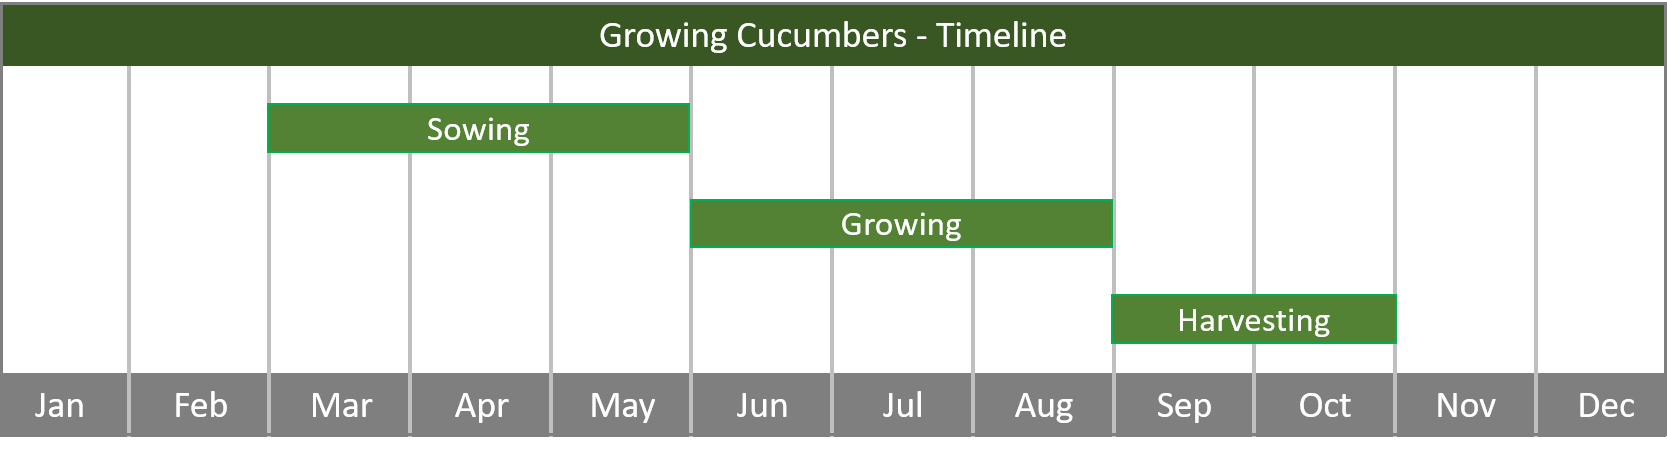 how to grow cucumbers from seed to harvest - timeline